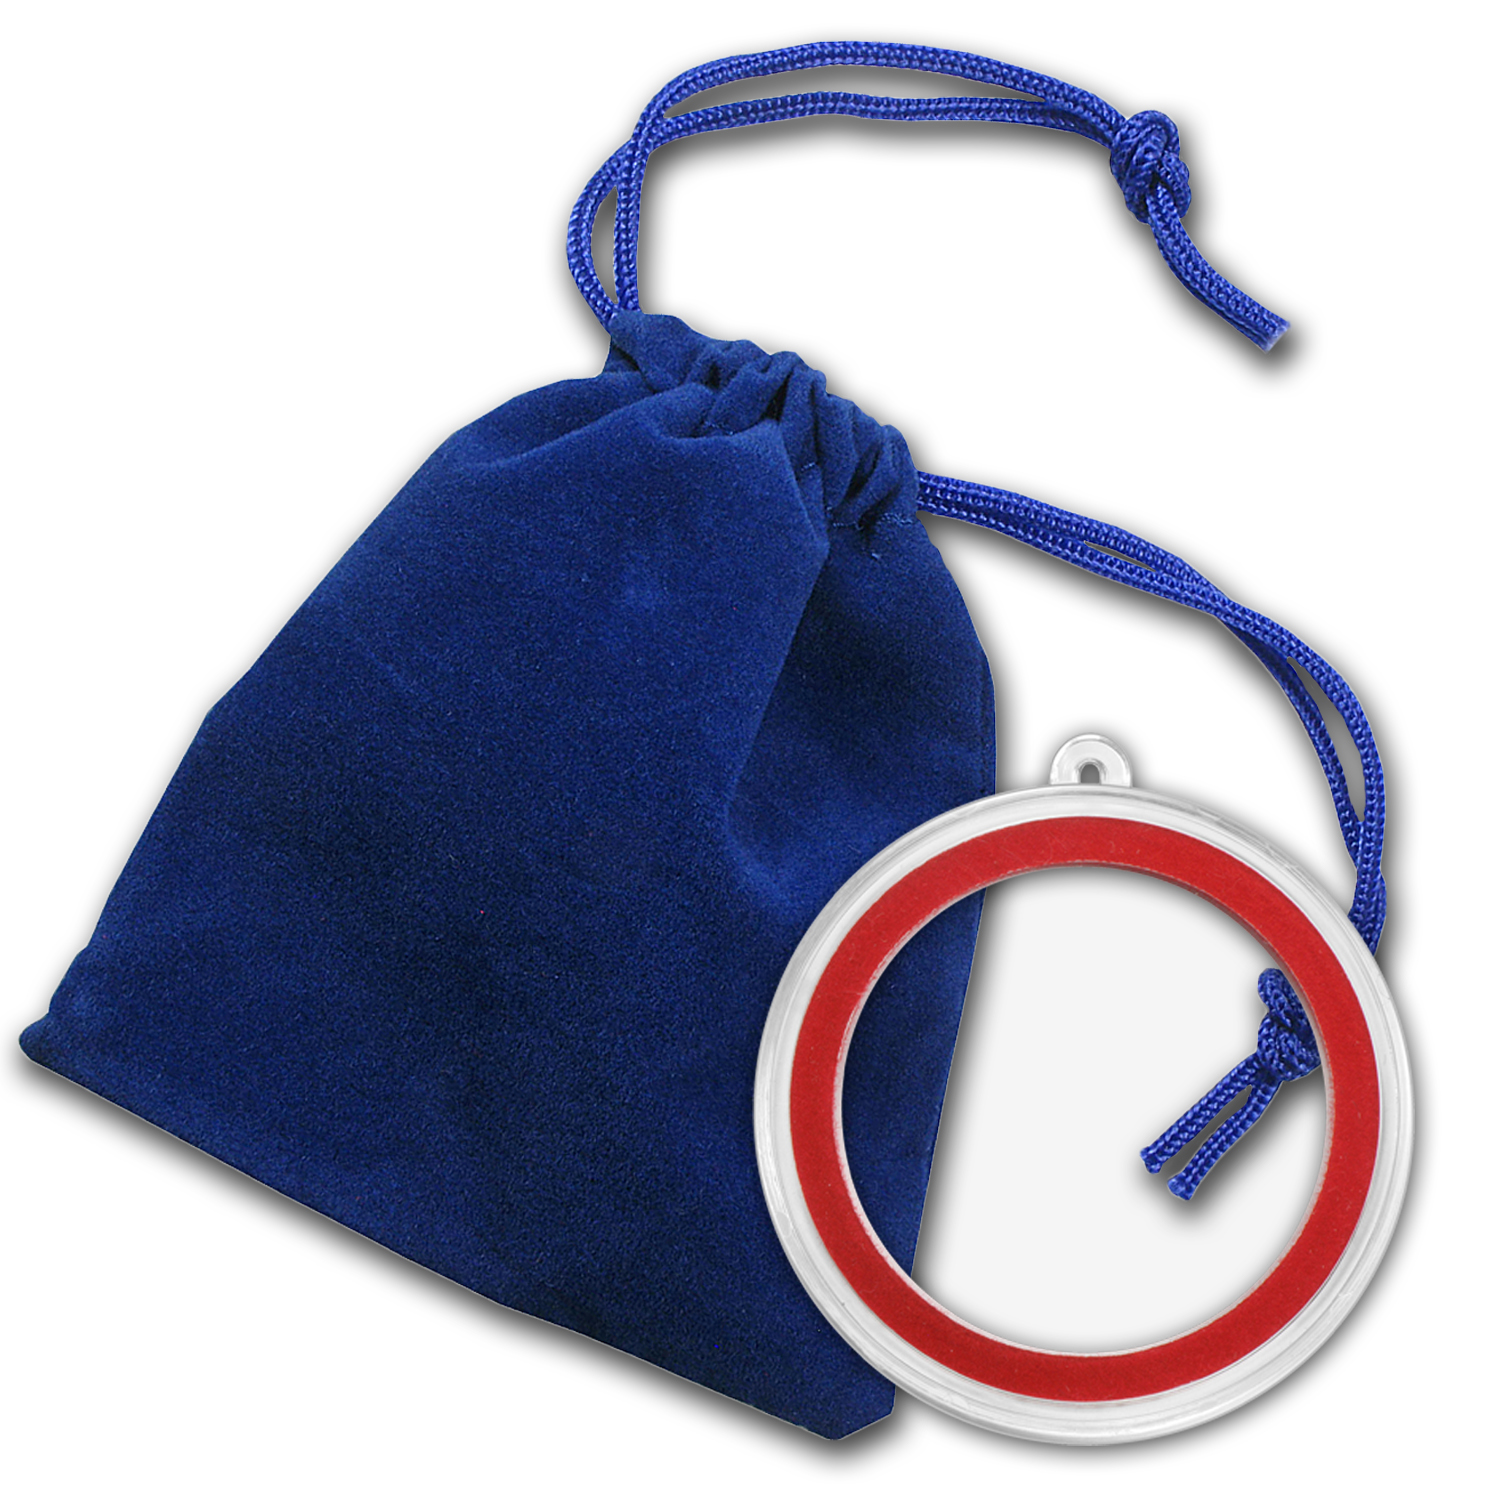 2.75 x 3 inch Blue Velour Draw String Pouch w/Ornament Capsule